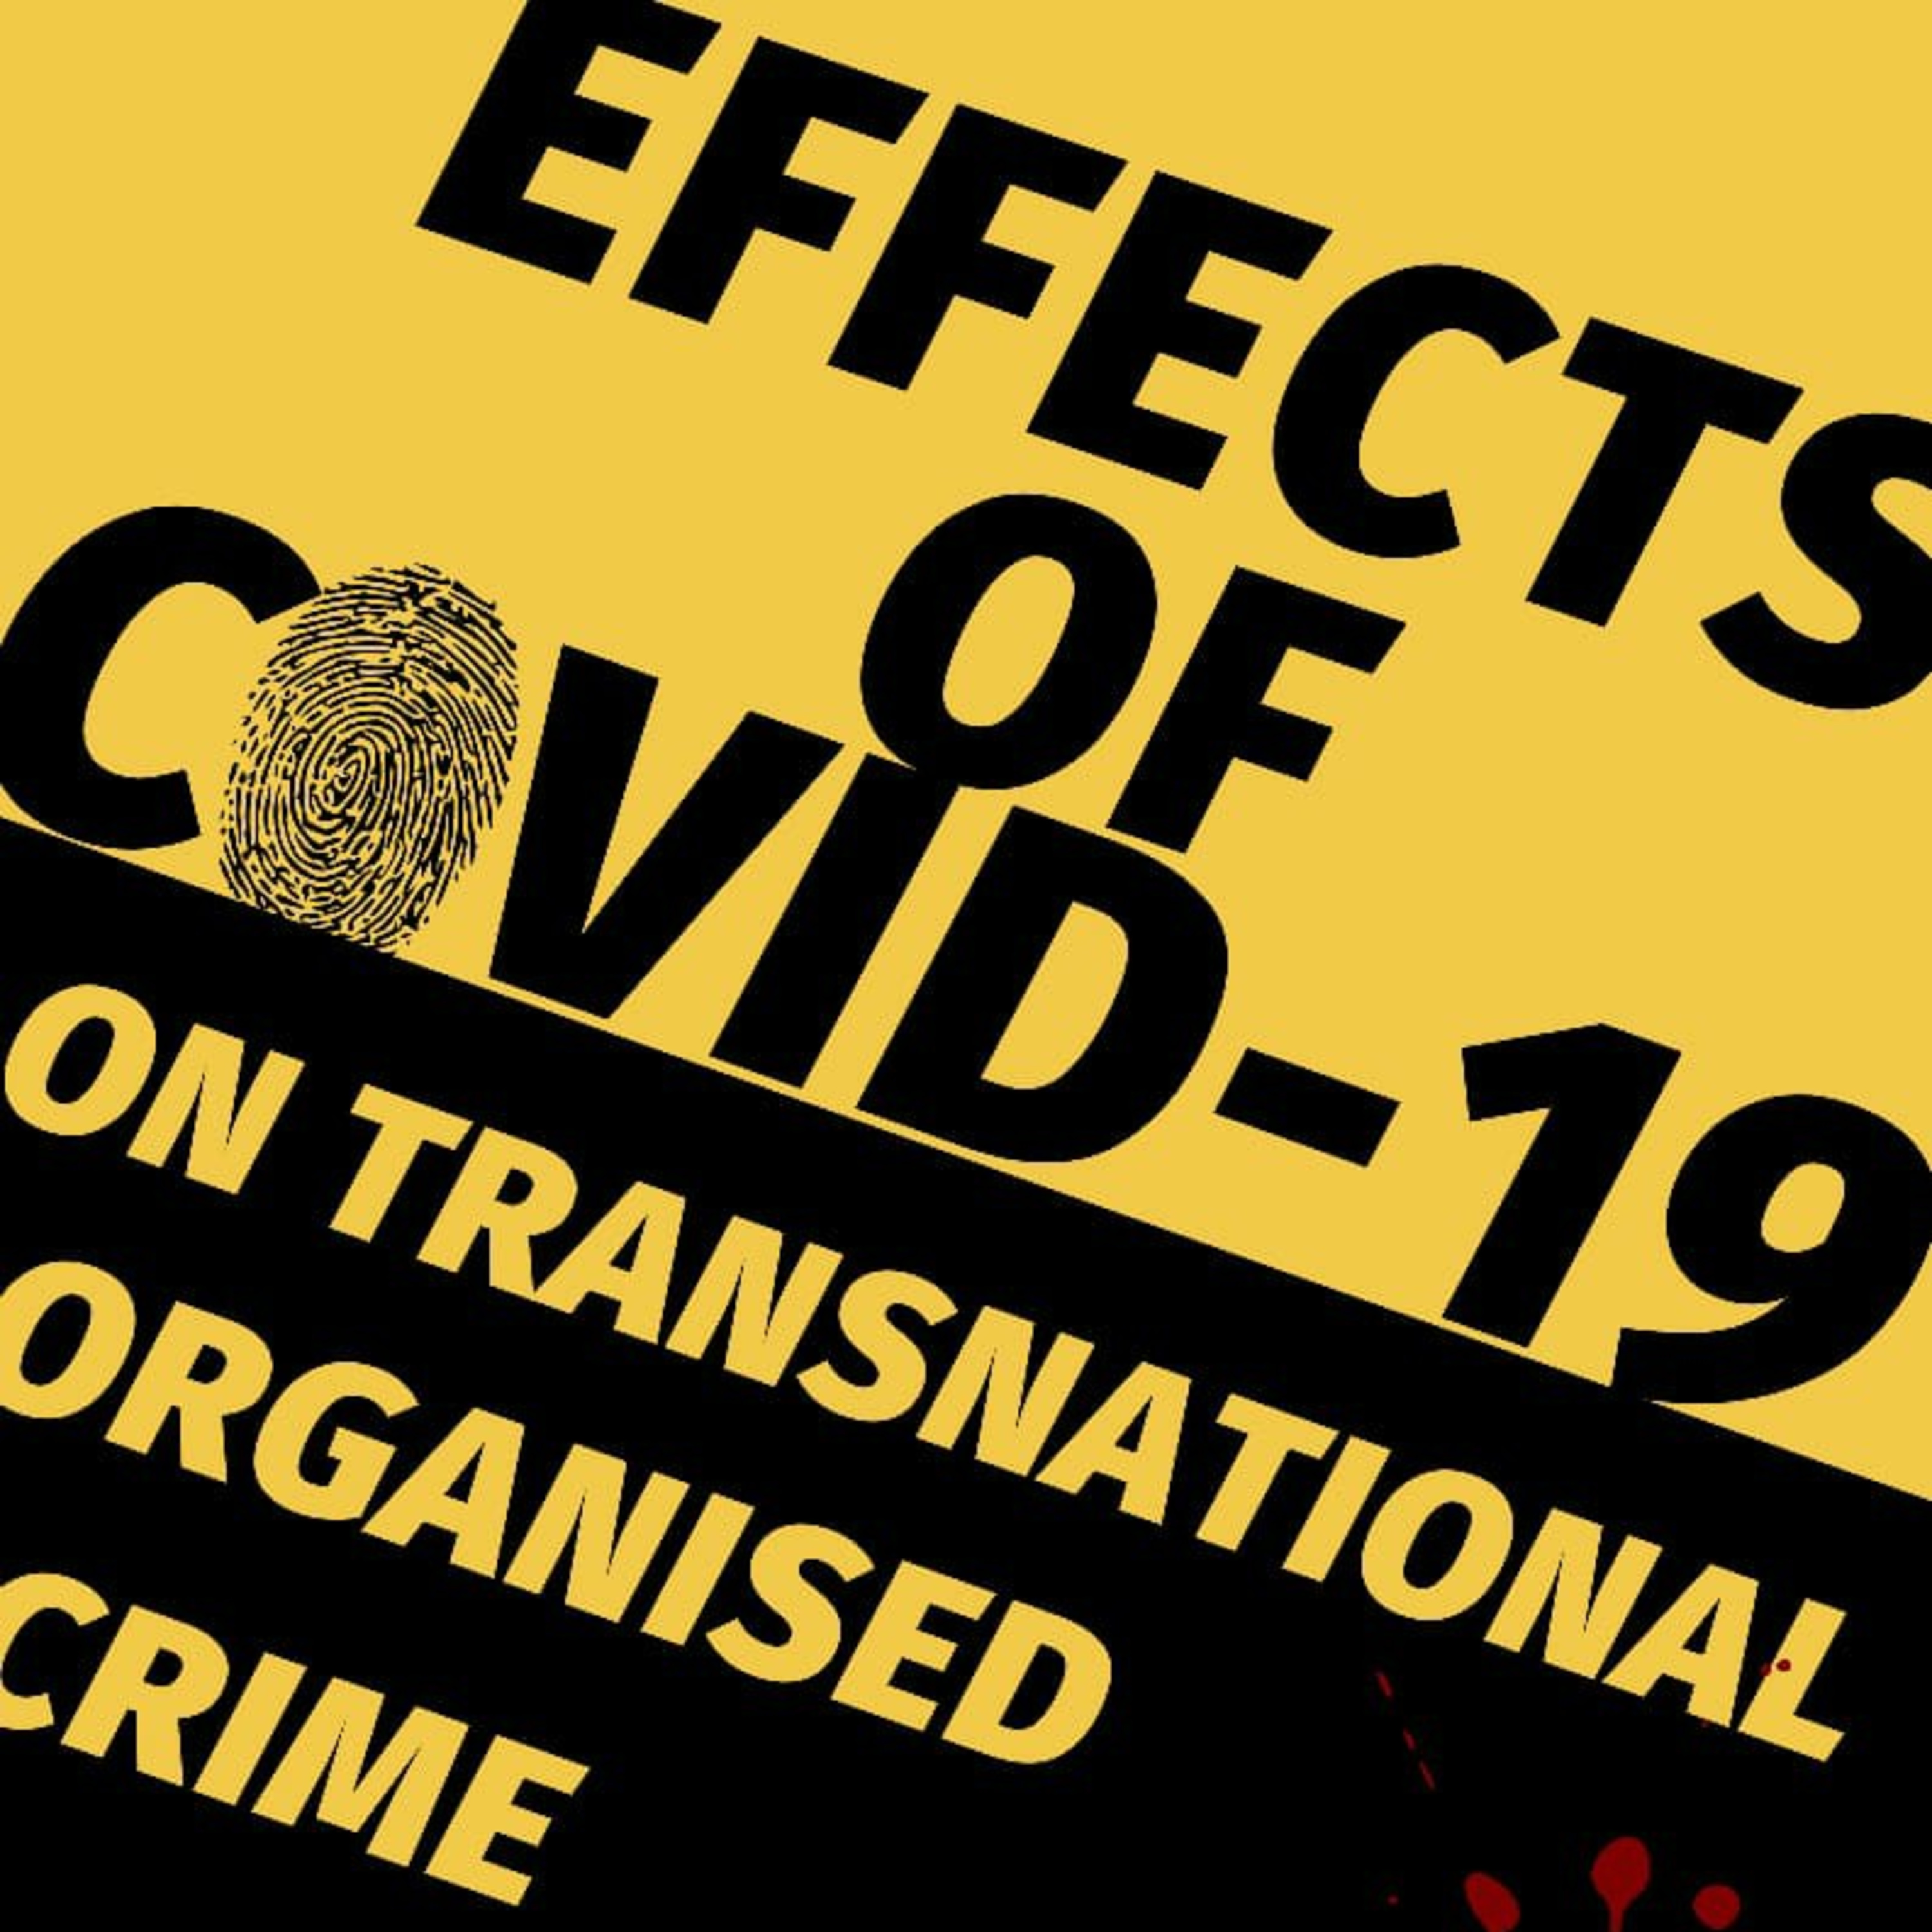 Effects of COVID-19 on Transnational Organized Crime